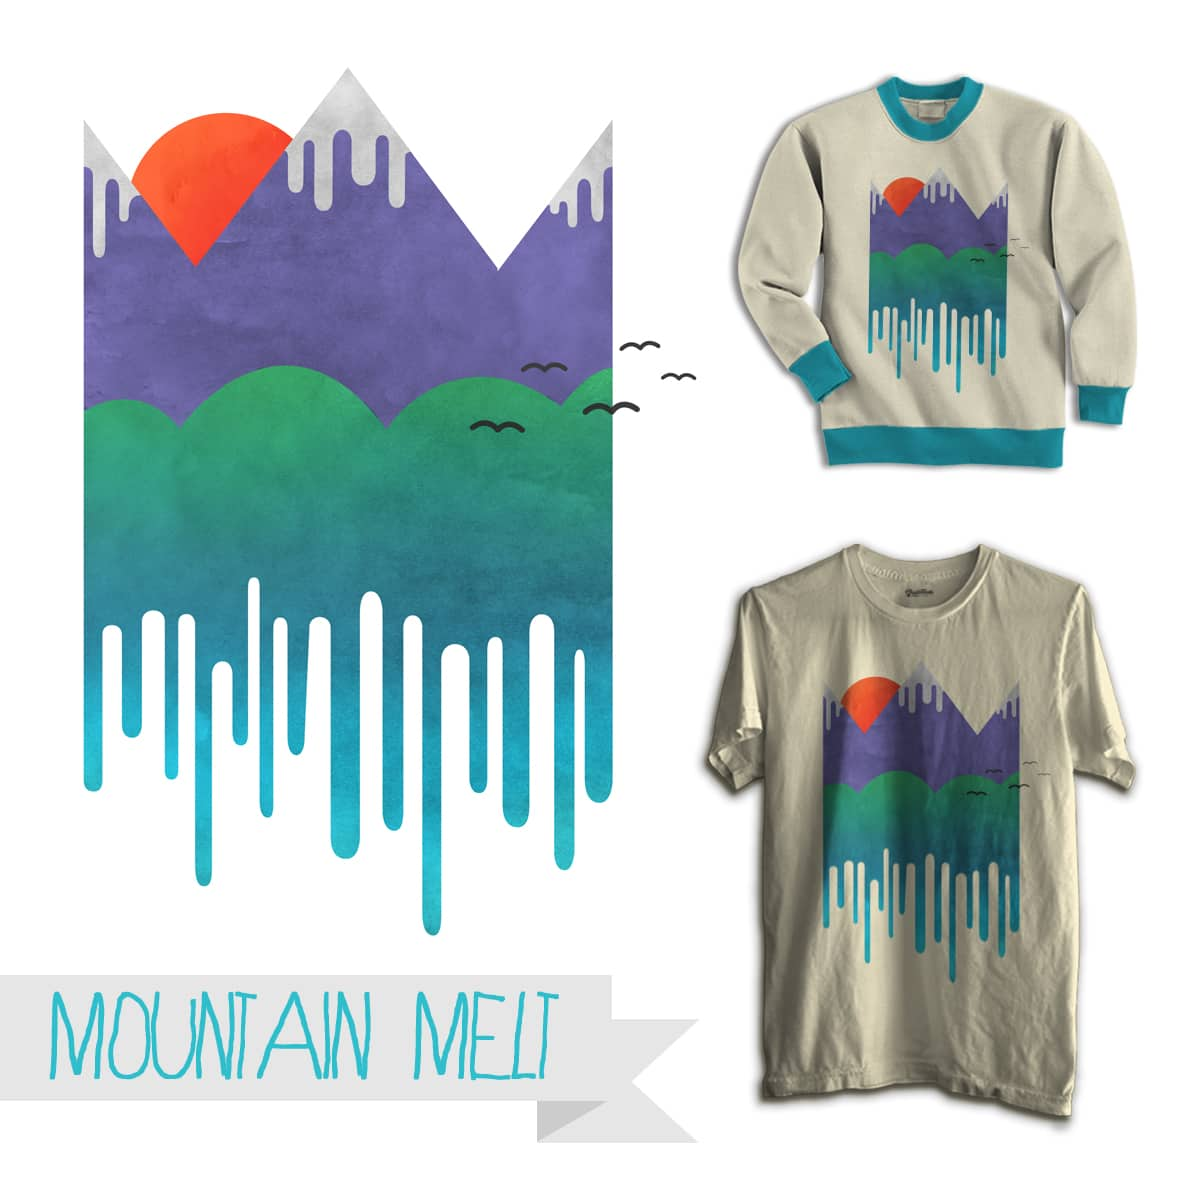 Mountain Melt by trumanflorence on Threadless